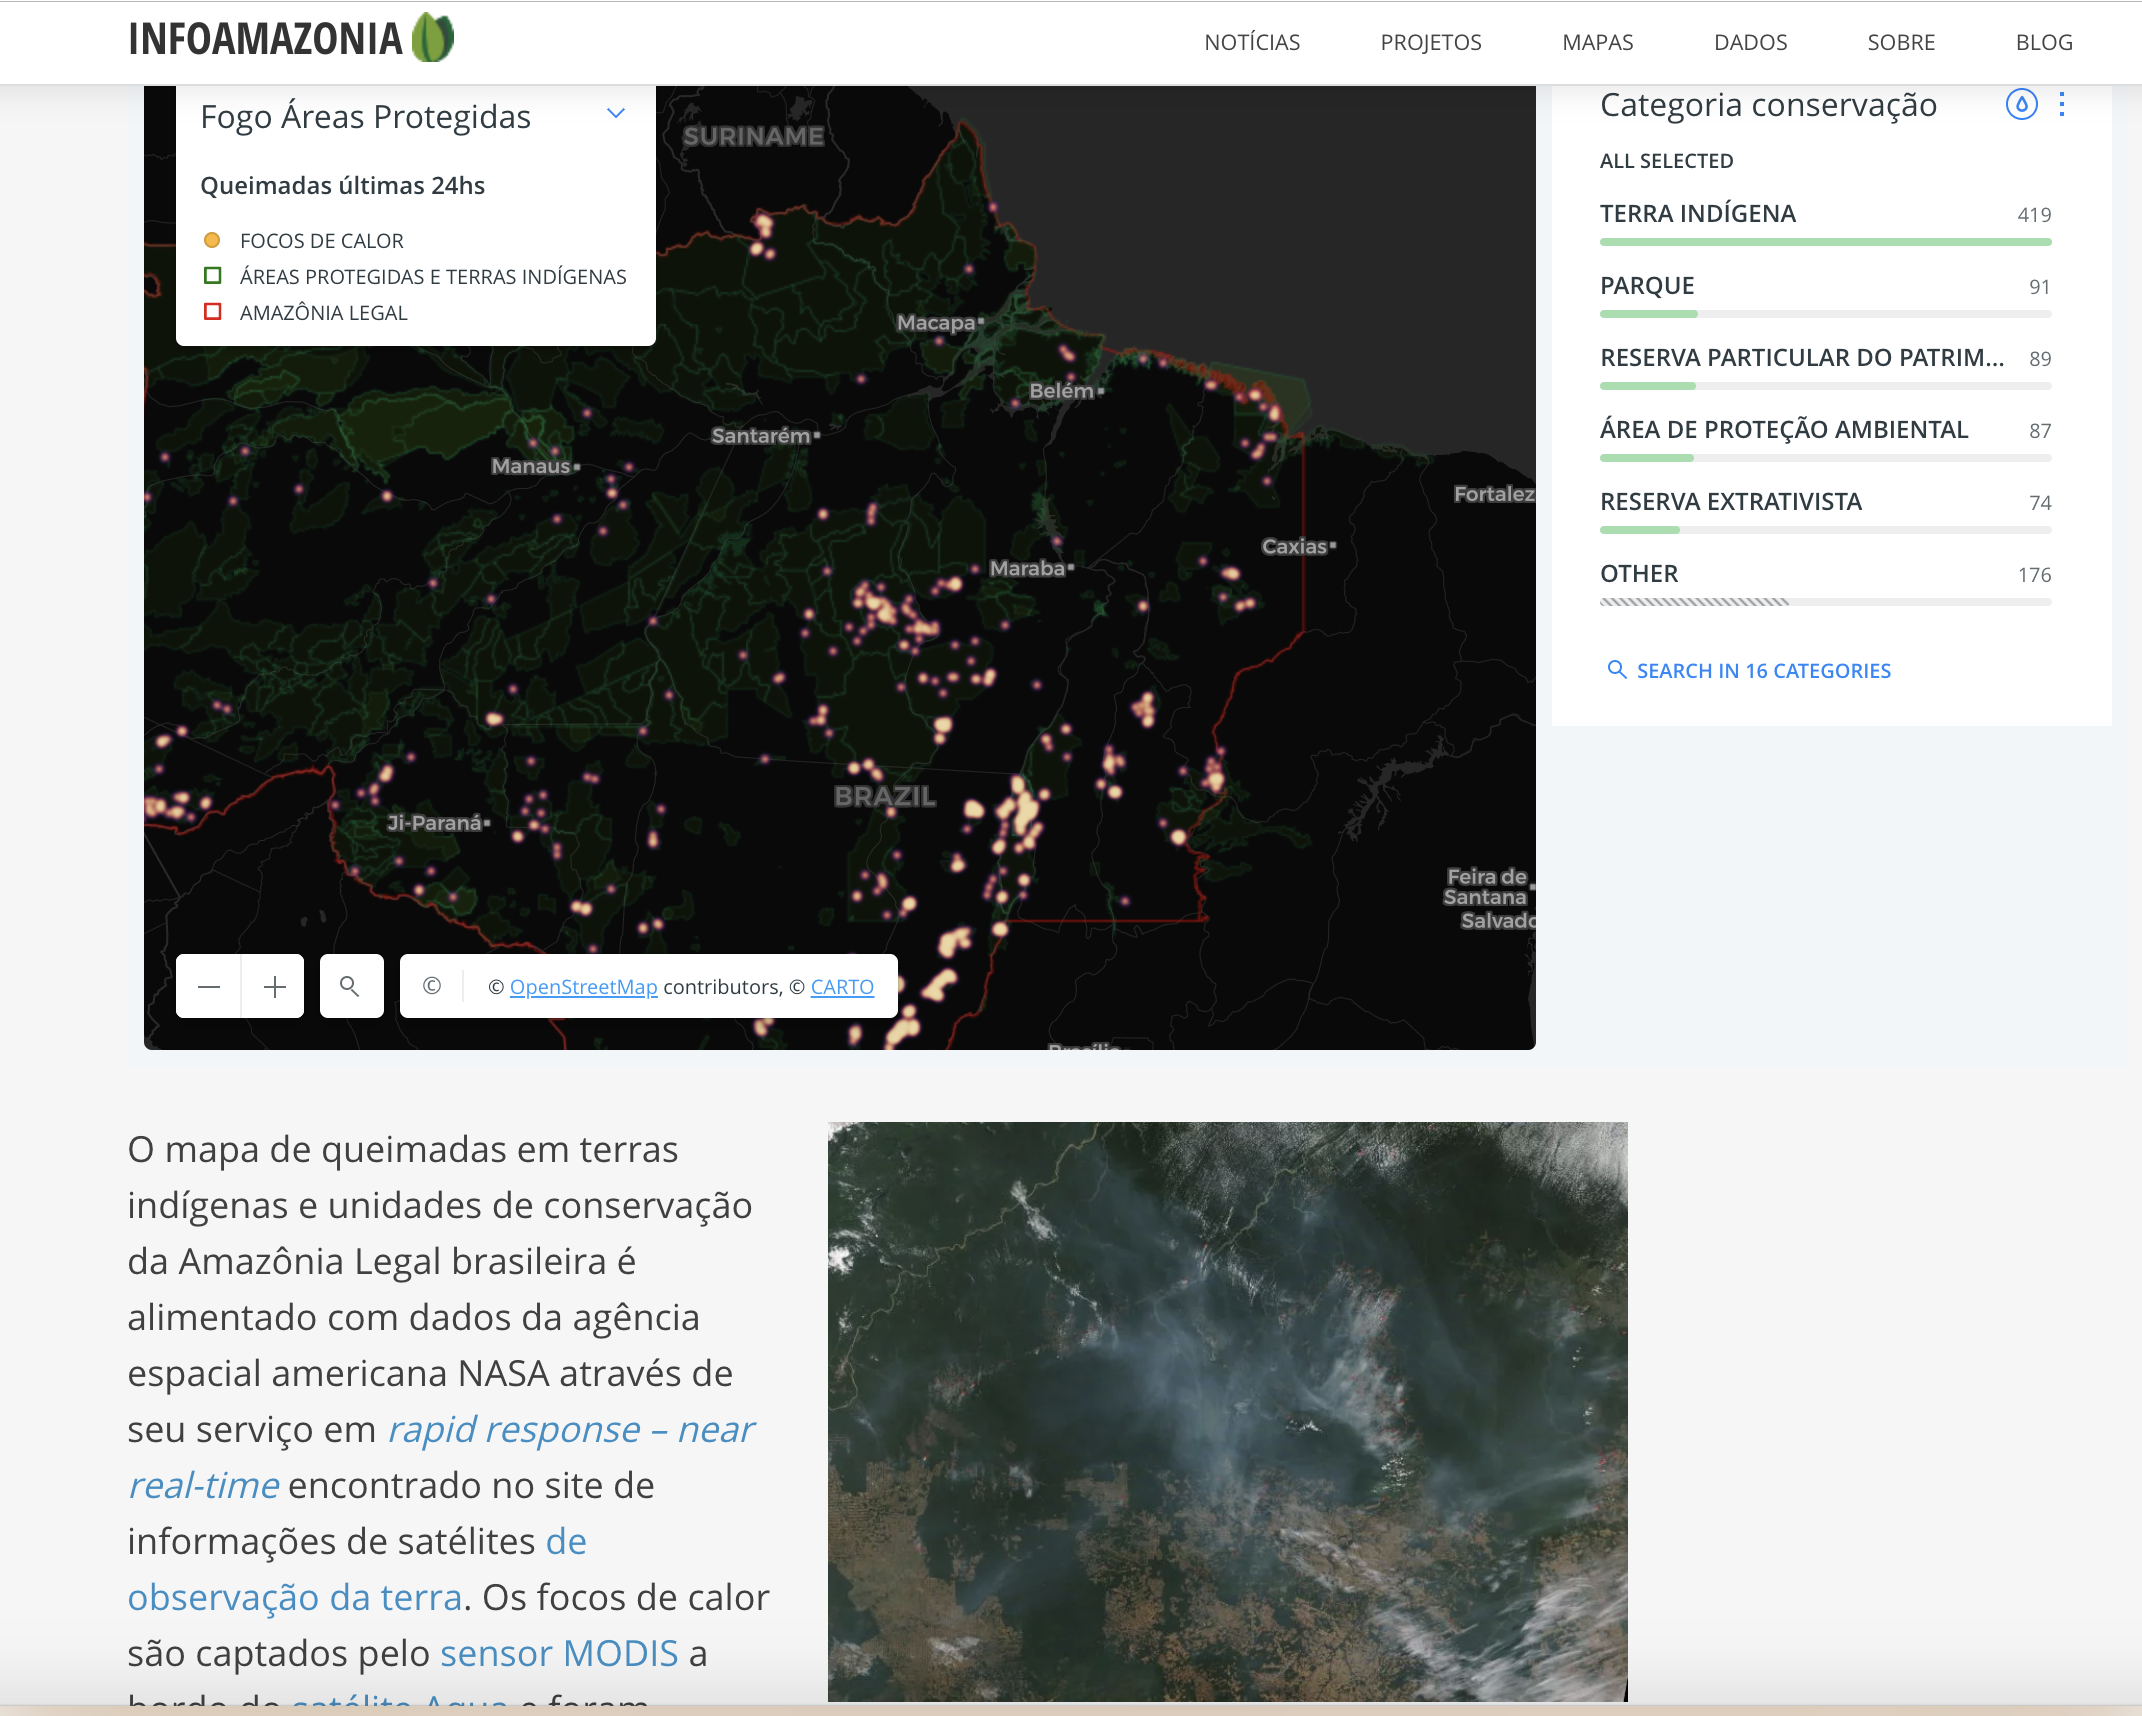 Screenshot of web page showing the InfoAmazonia map and photos